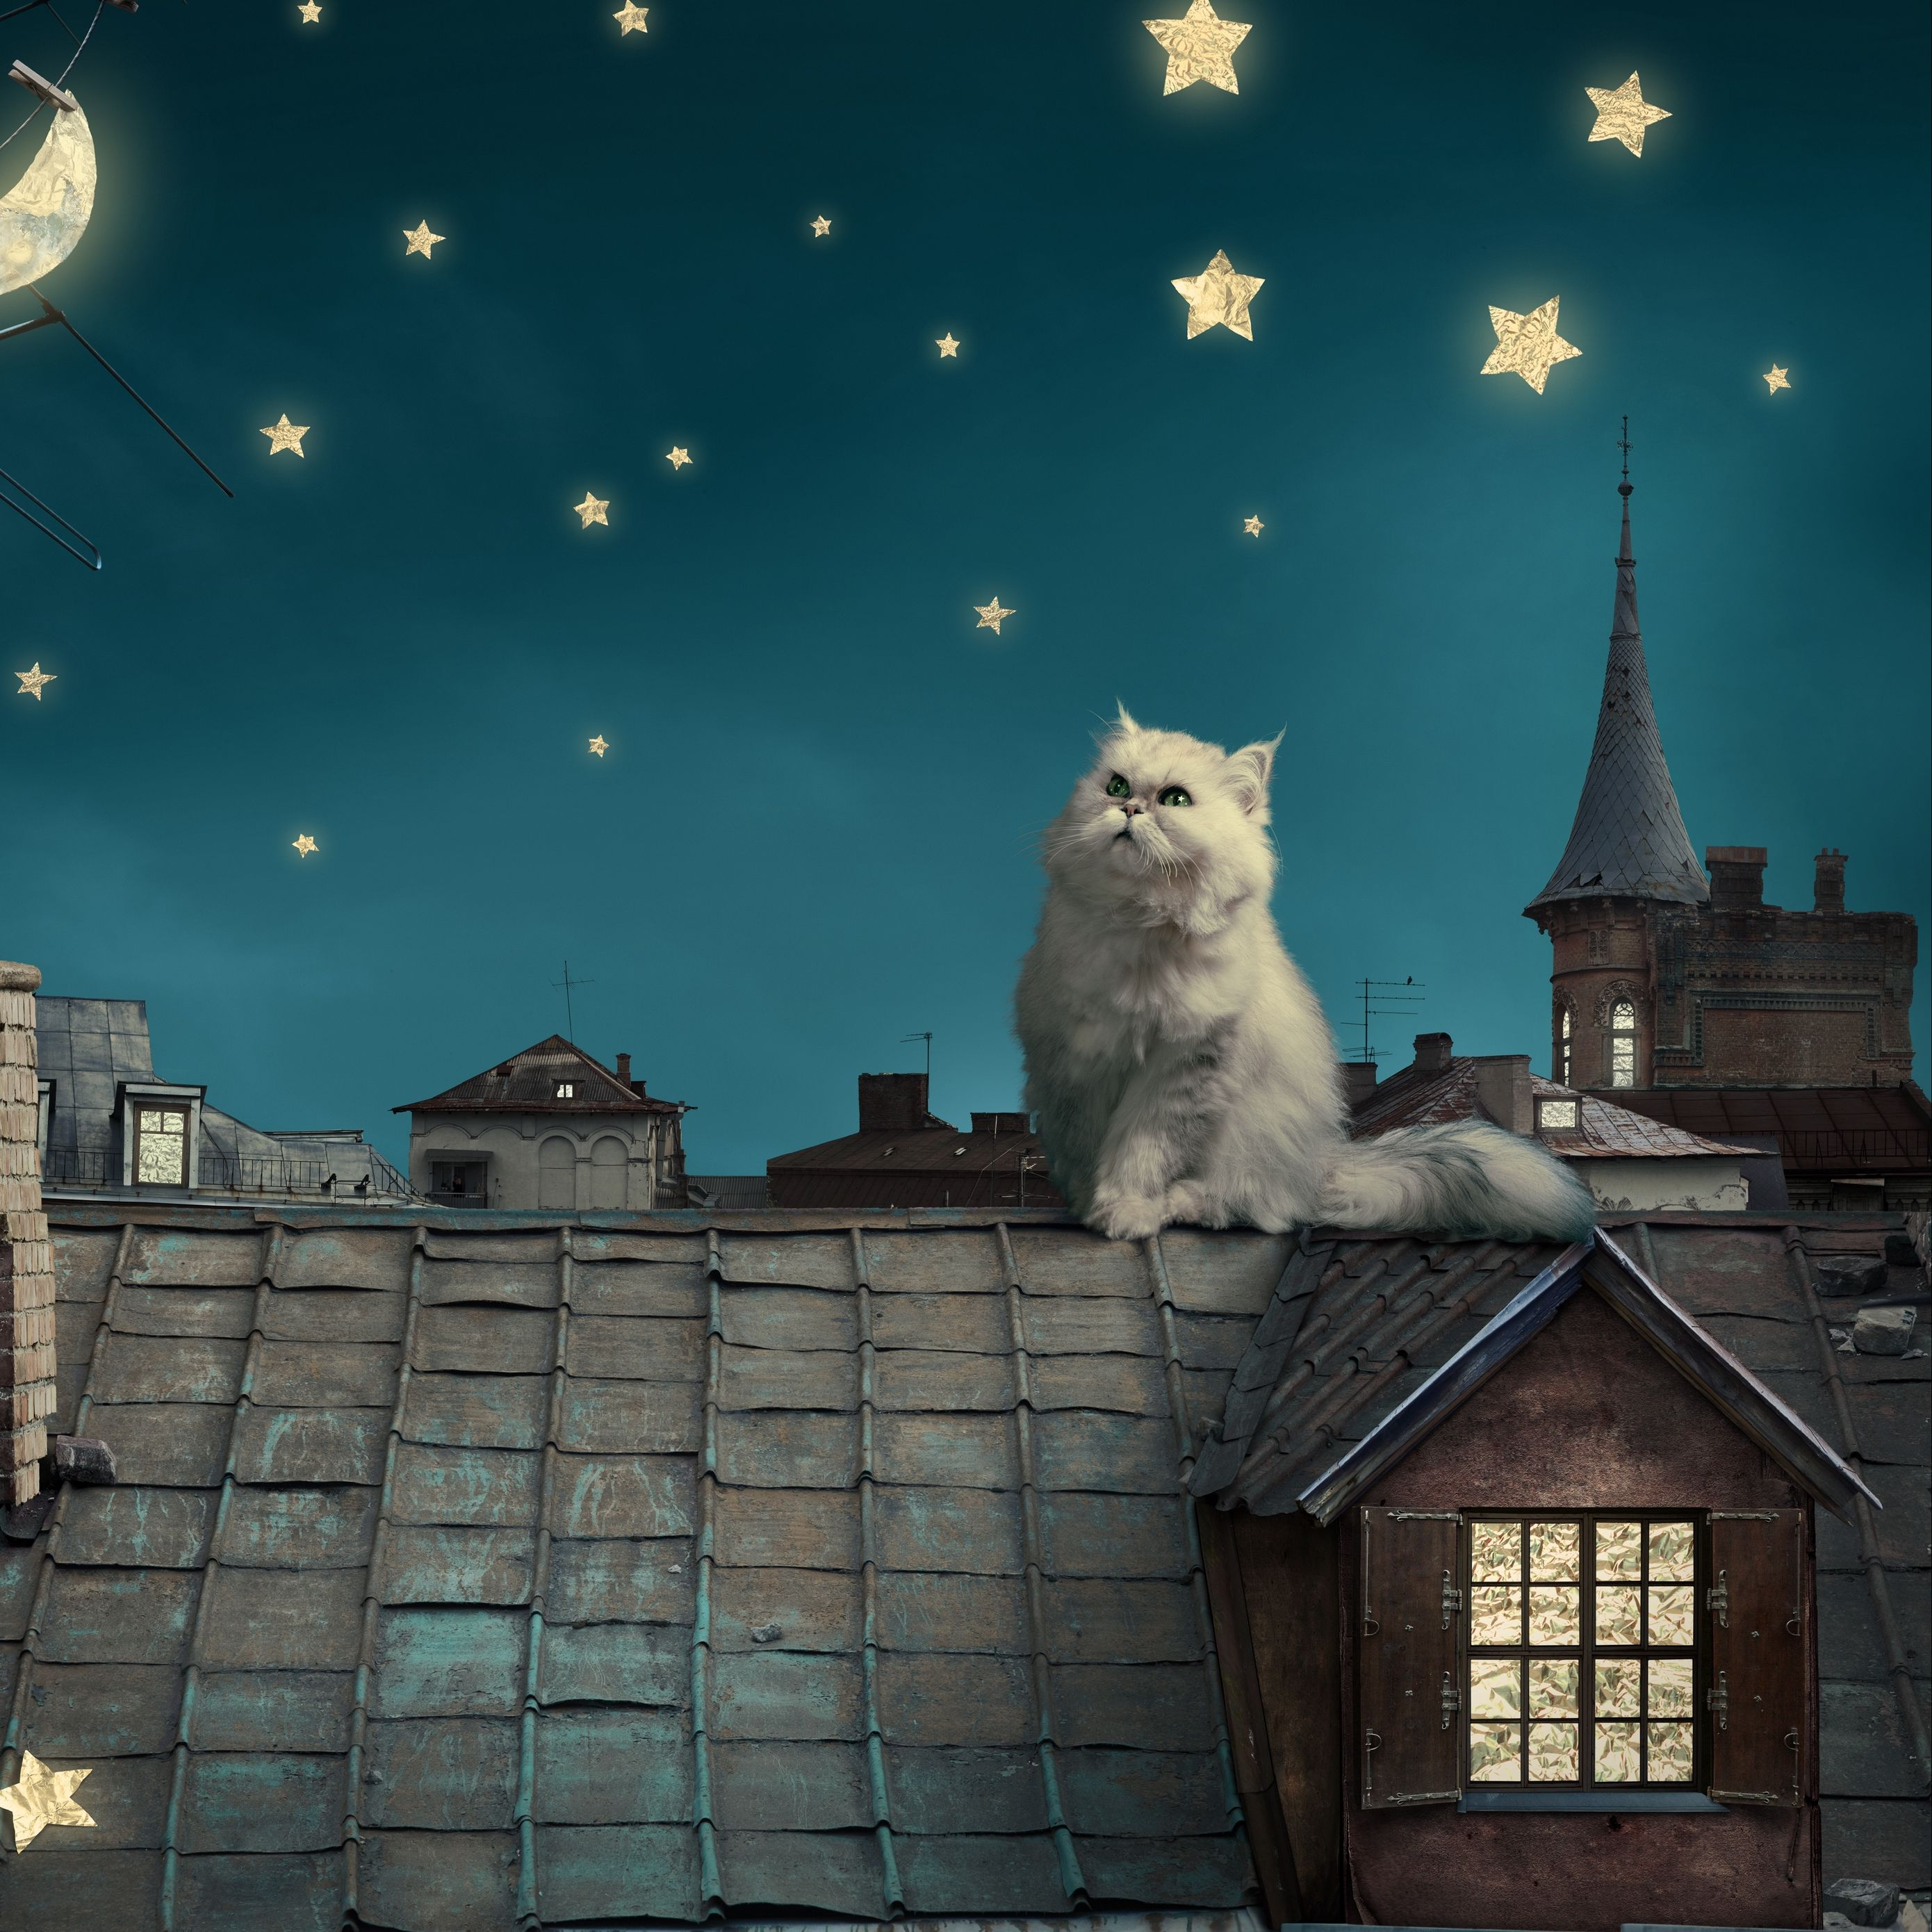 2780x2780 Wallpaper white persian cat, kitten, fairy tale, fantasy, roofs, houses, sky, night, stars, moon